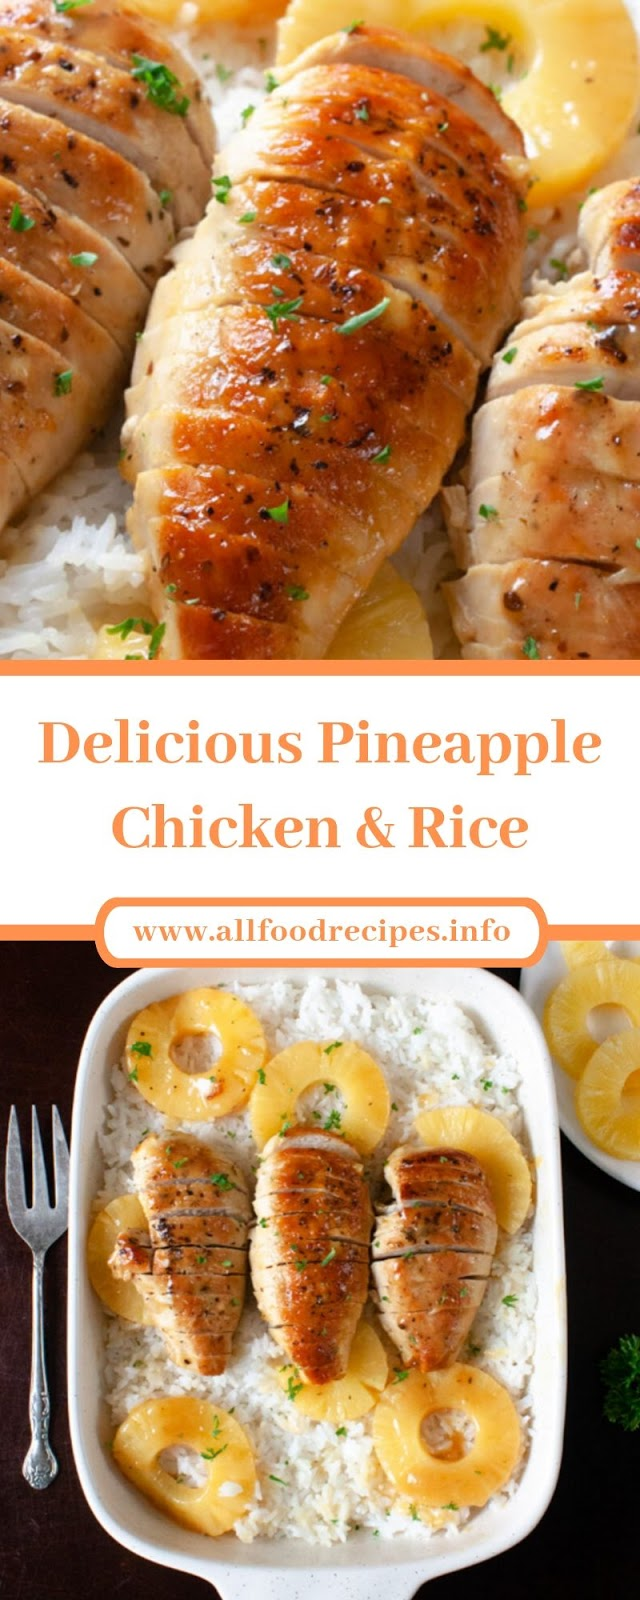 Delicious Pineapple Chicken & Rice